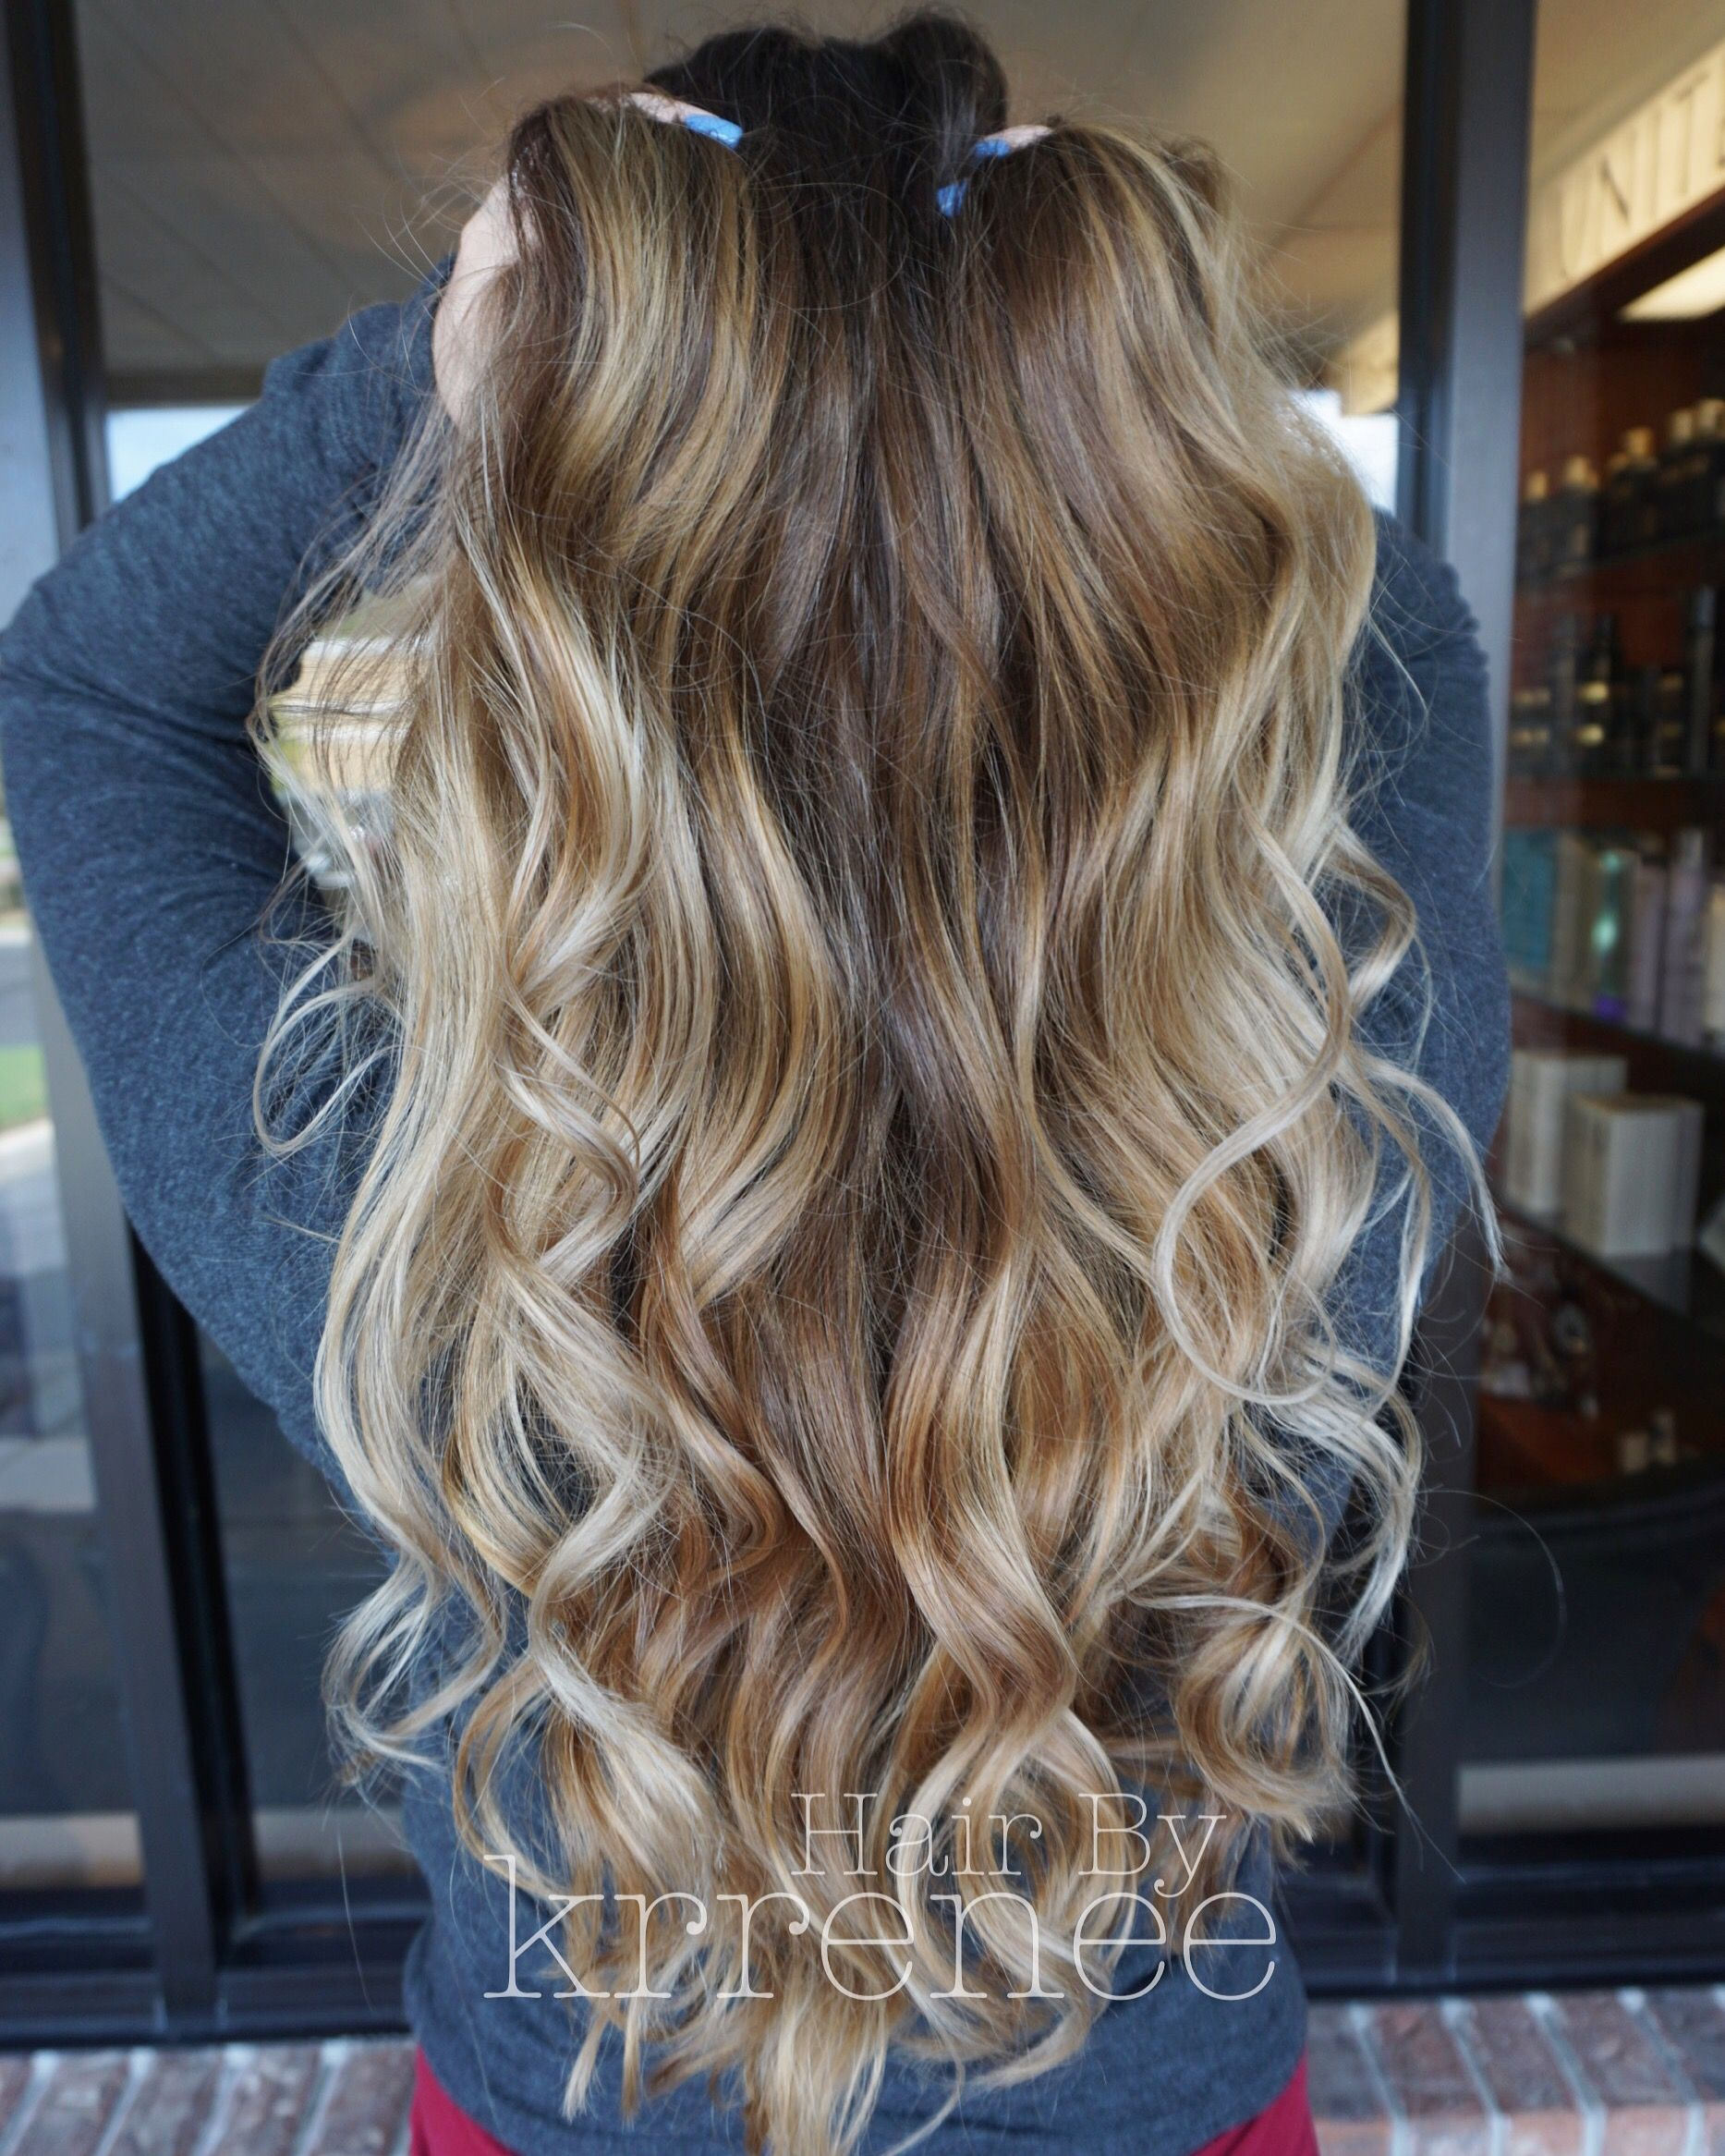 balayage hair color for fall kristen mackoul hair mackoul hair fall 2016 balayage hair kristen mackoul hair colors beauty hairs